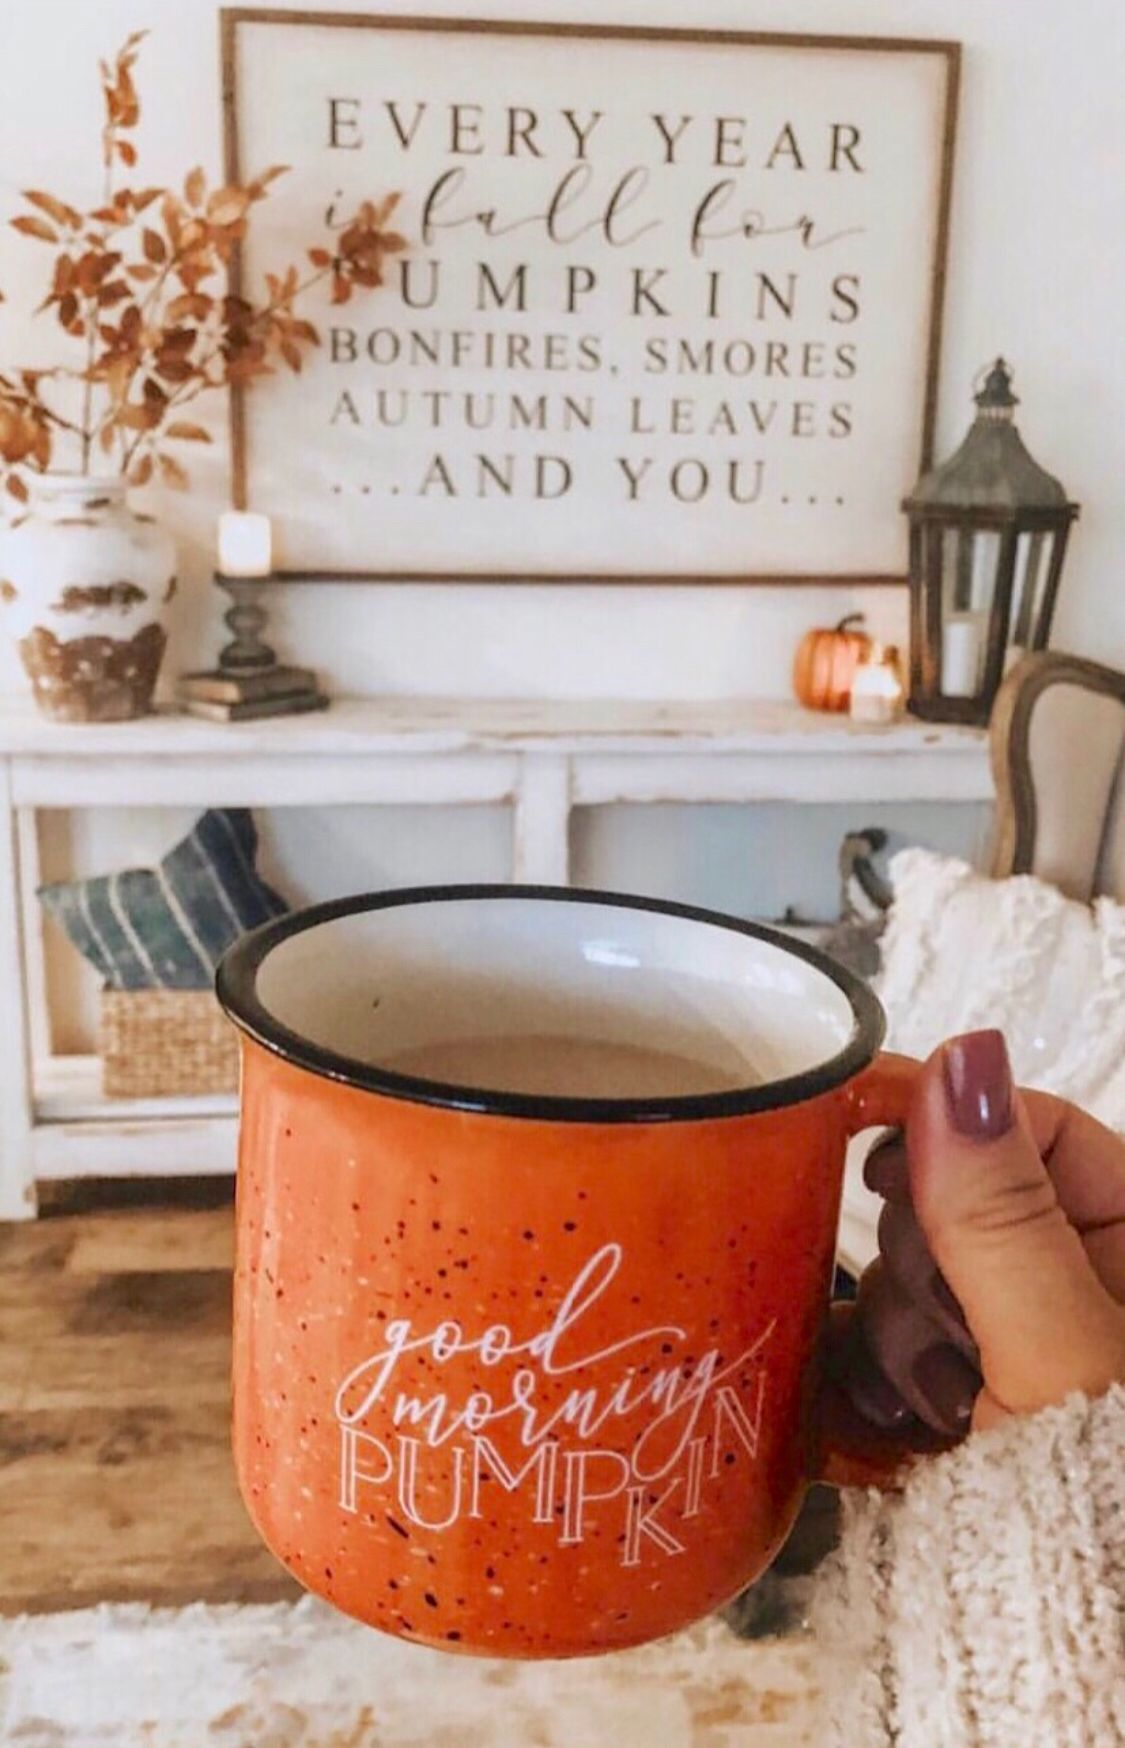 Good Morning Pumpkin Campfire Mug = Fall Vibes - Pretty Collected